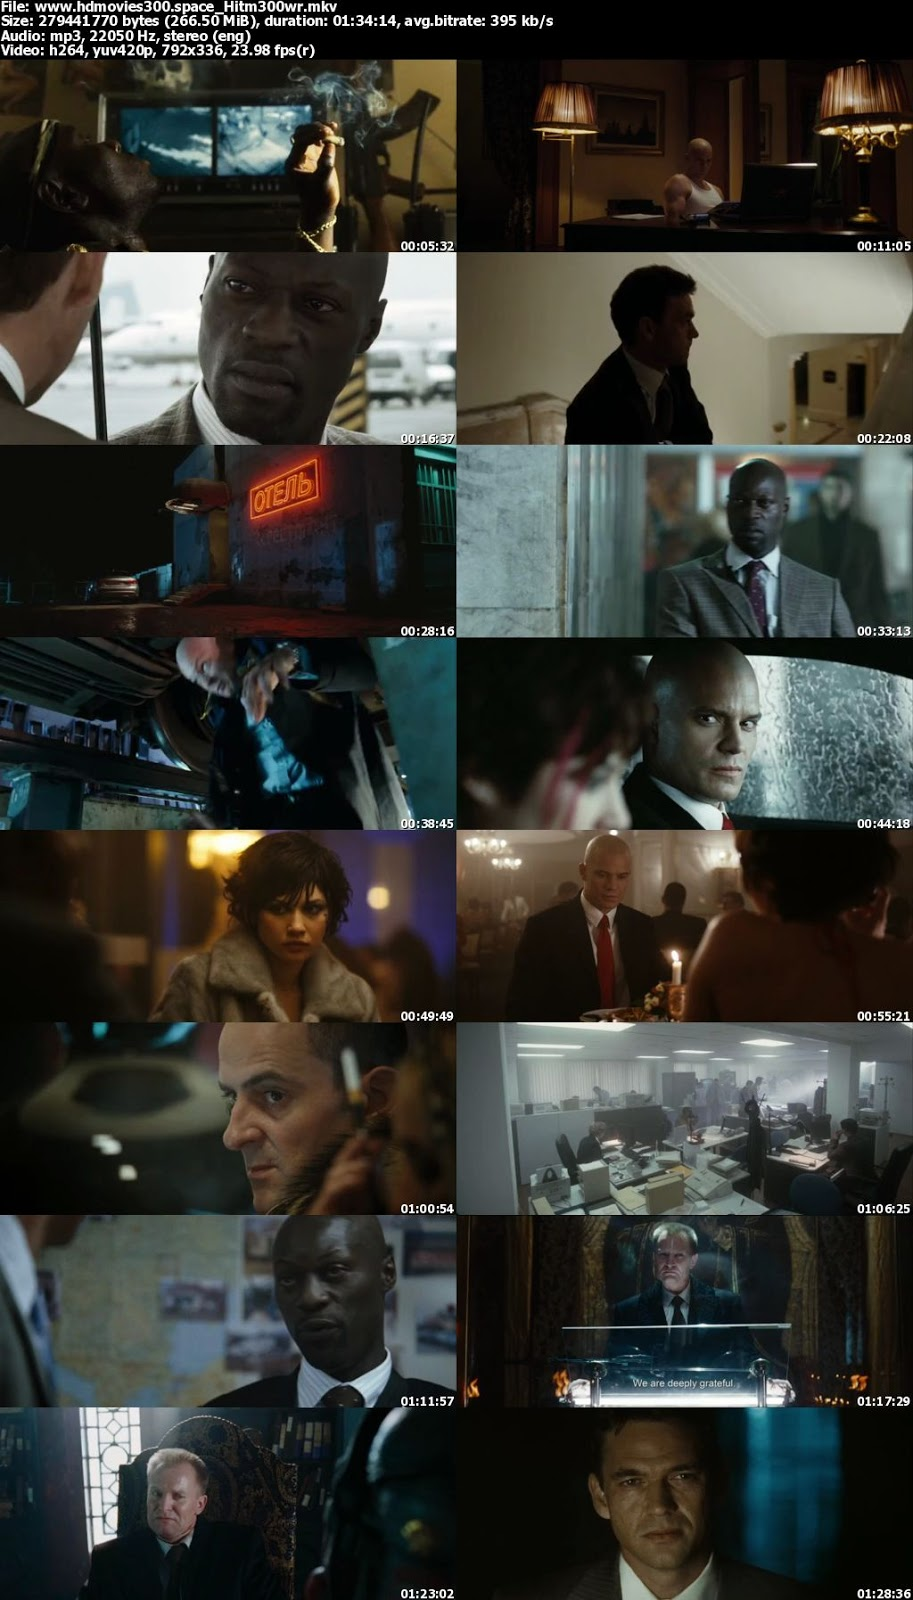 Hitman 2007 English 480p 250mb Brrip Mkv Download Full Movie